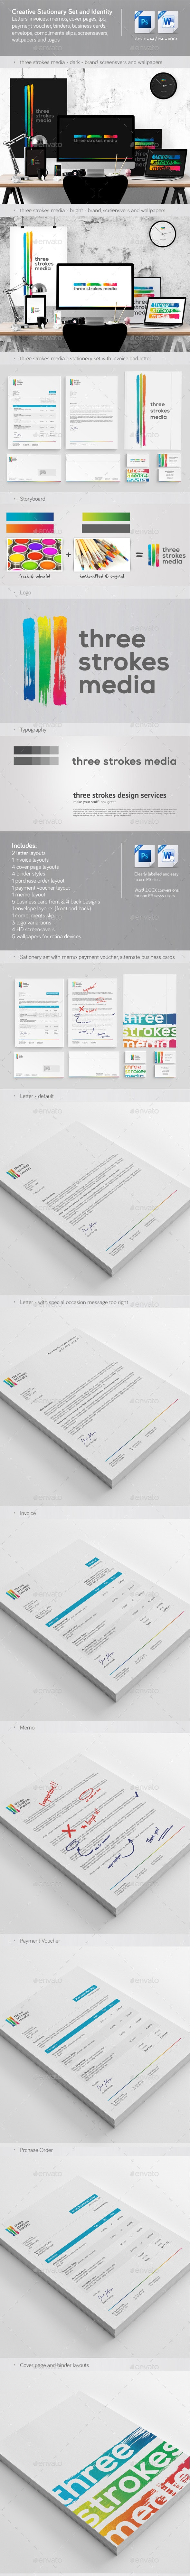 Creative Corporate Identity and Stationery - Stationery Print Templates